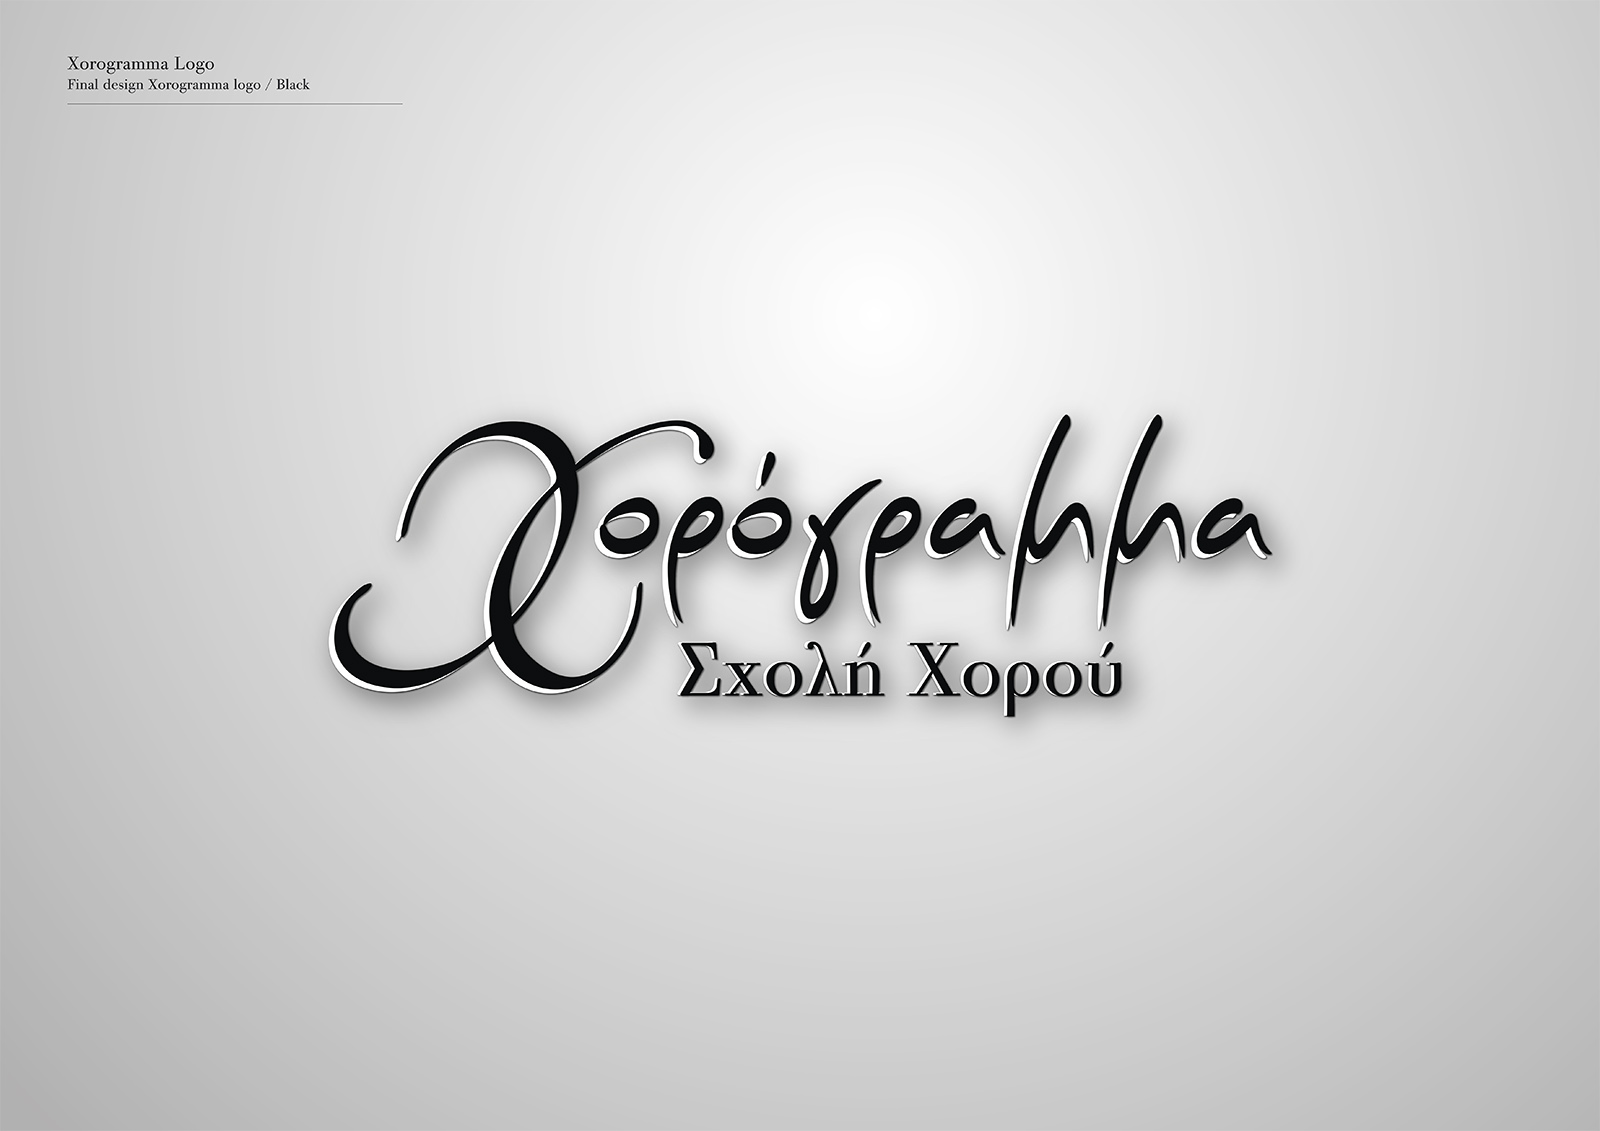 Corporate Identity Xorogramma_final_logo_black_yianart